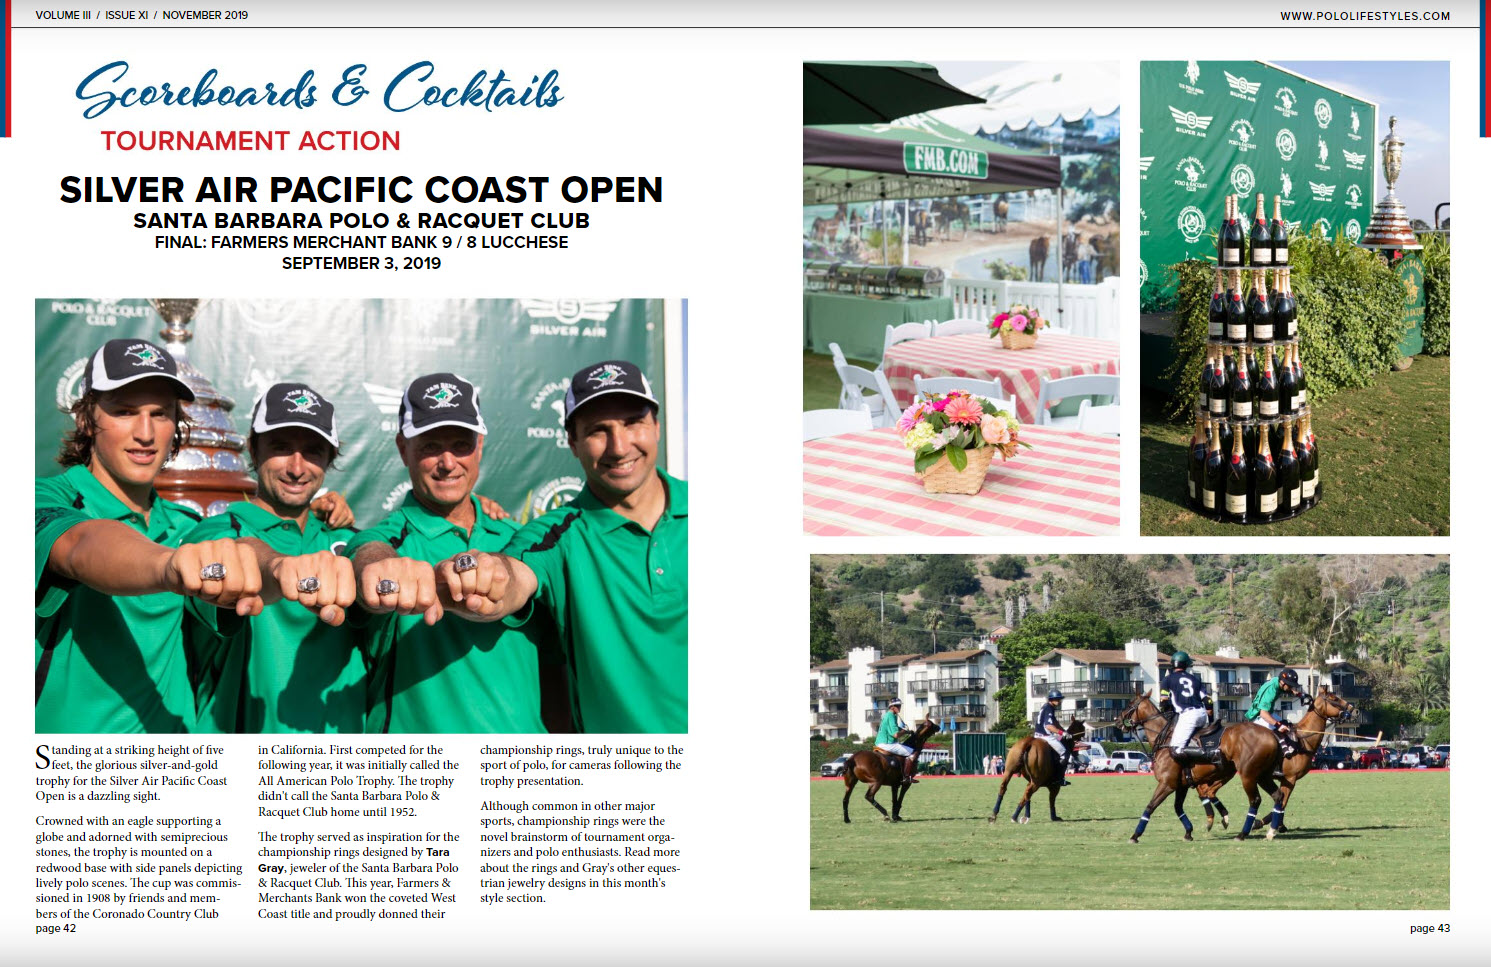 Silver Air Pacific Coast Open